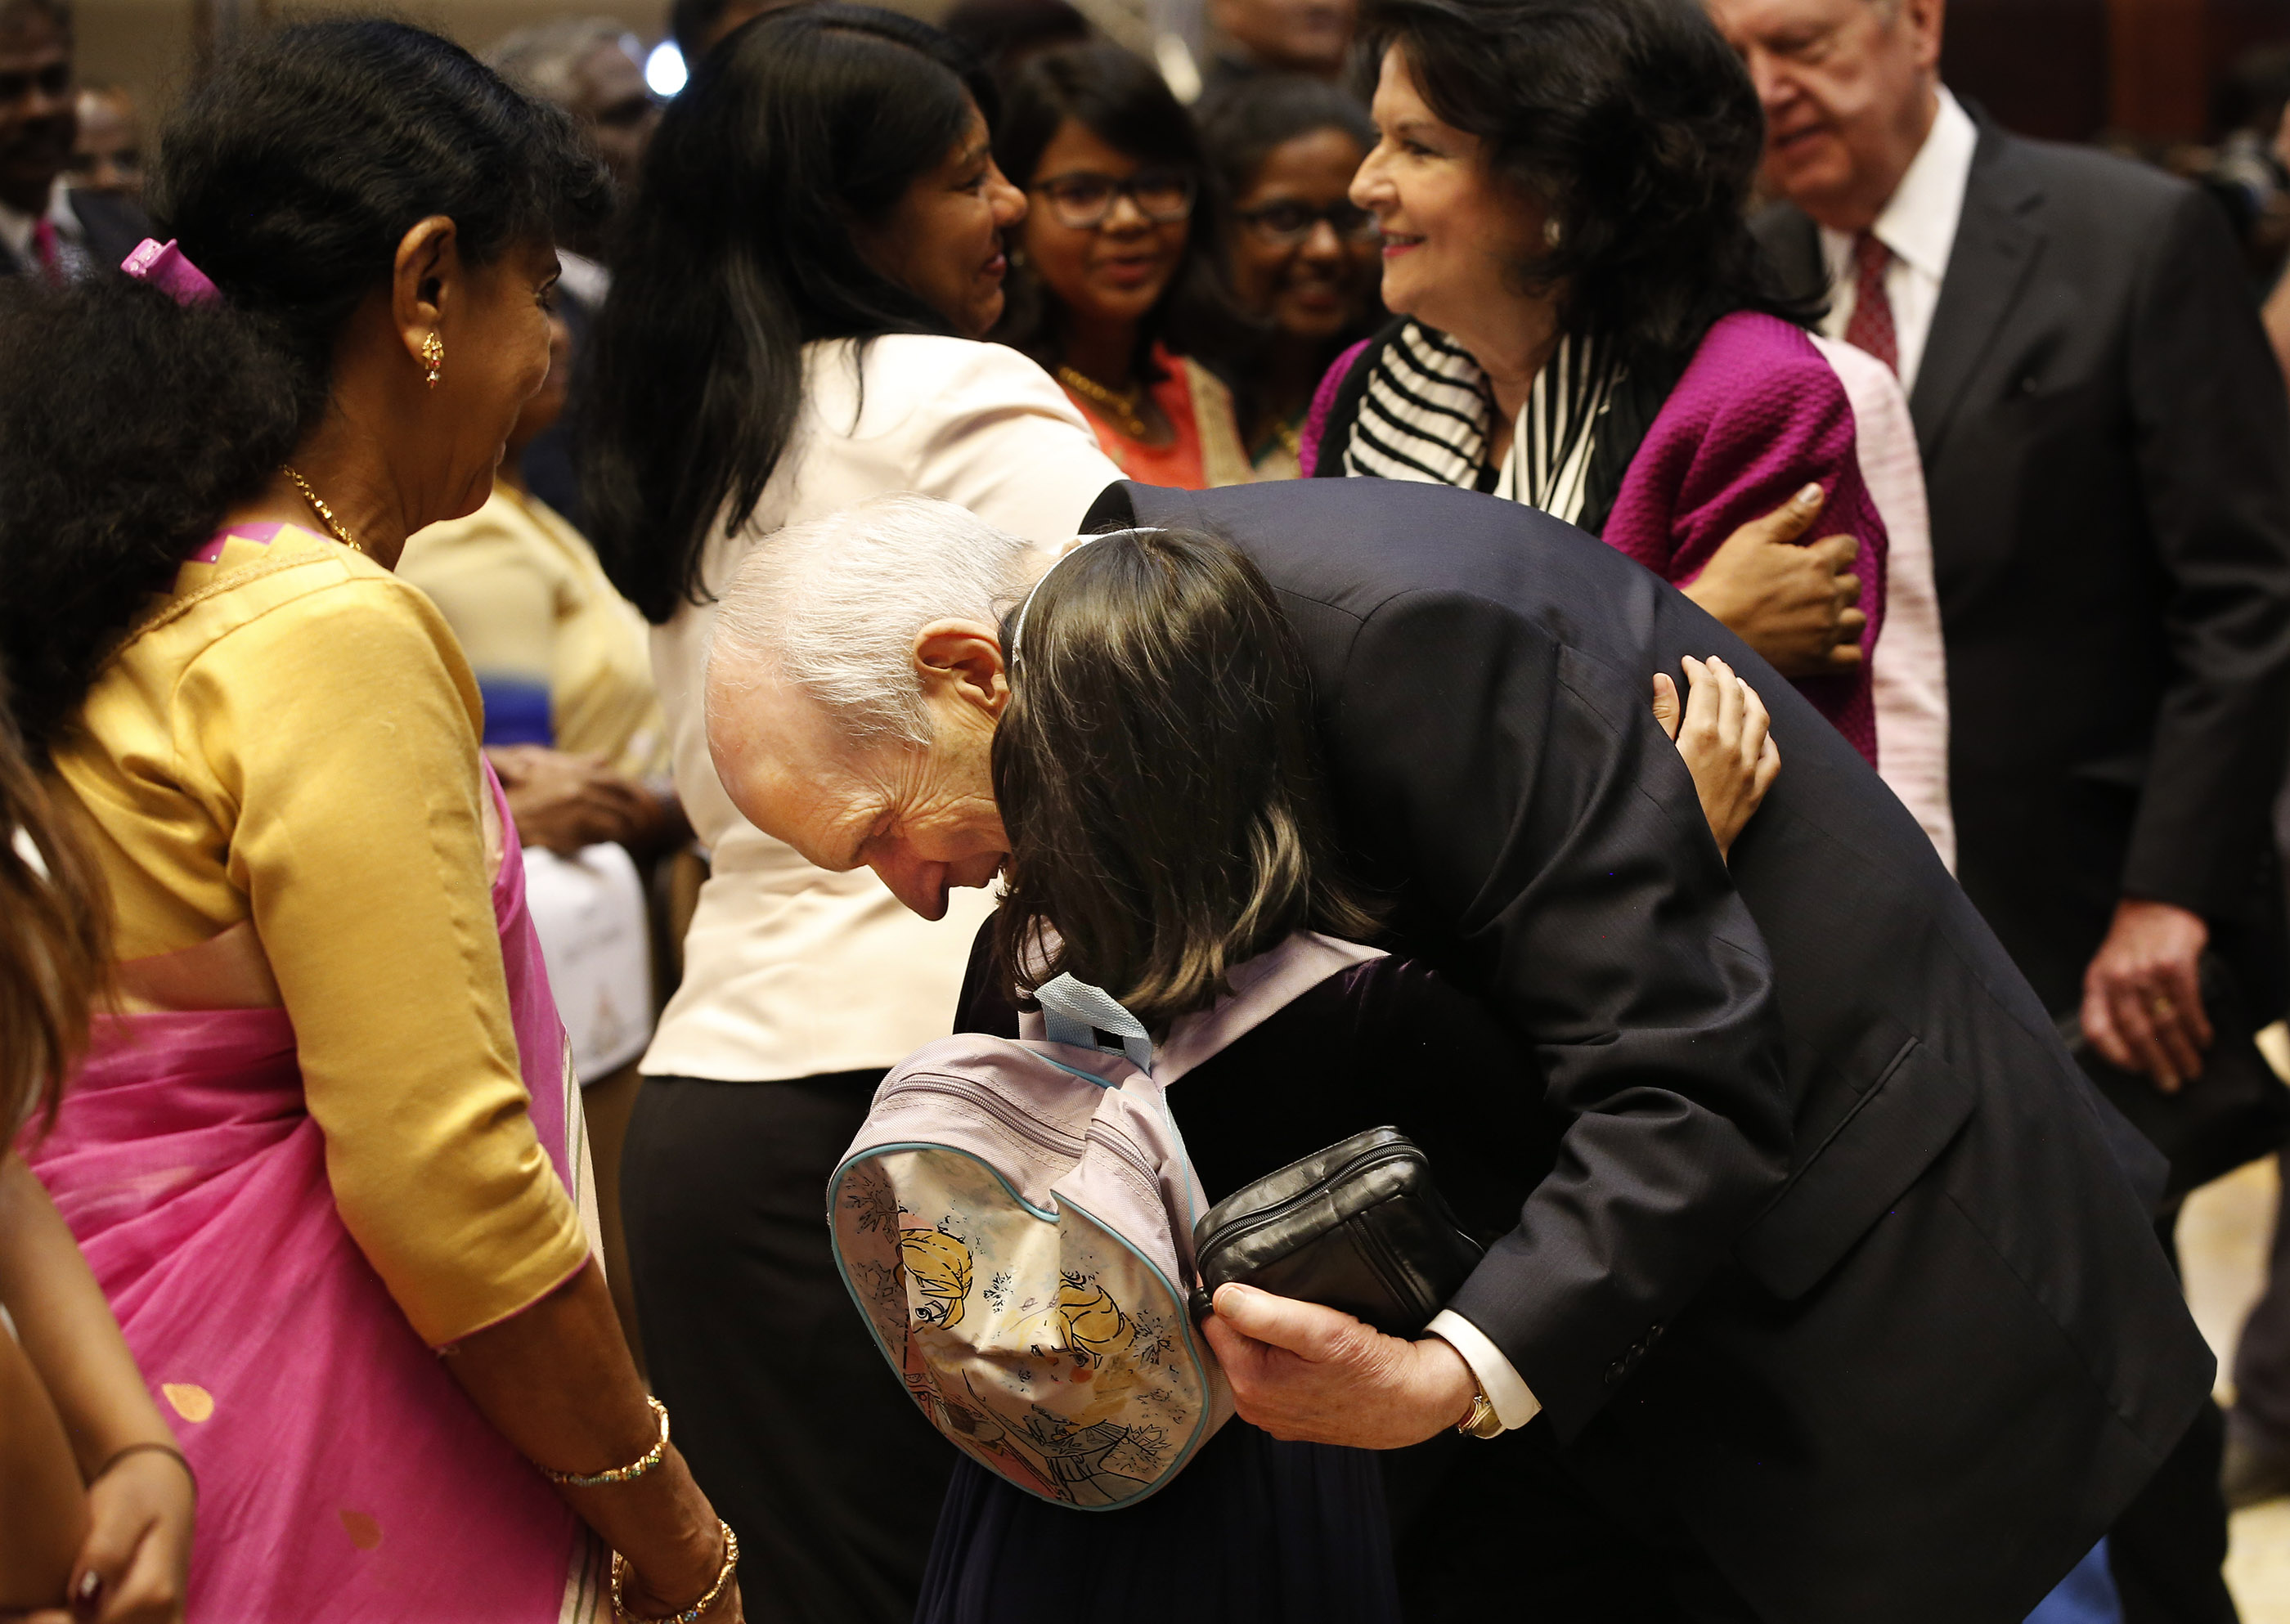 President Russell M. Nelson hugs Roseanne William after the devotional in Bengaluru, India, on Thursday, April 19, 2018.